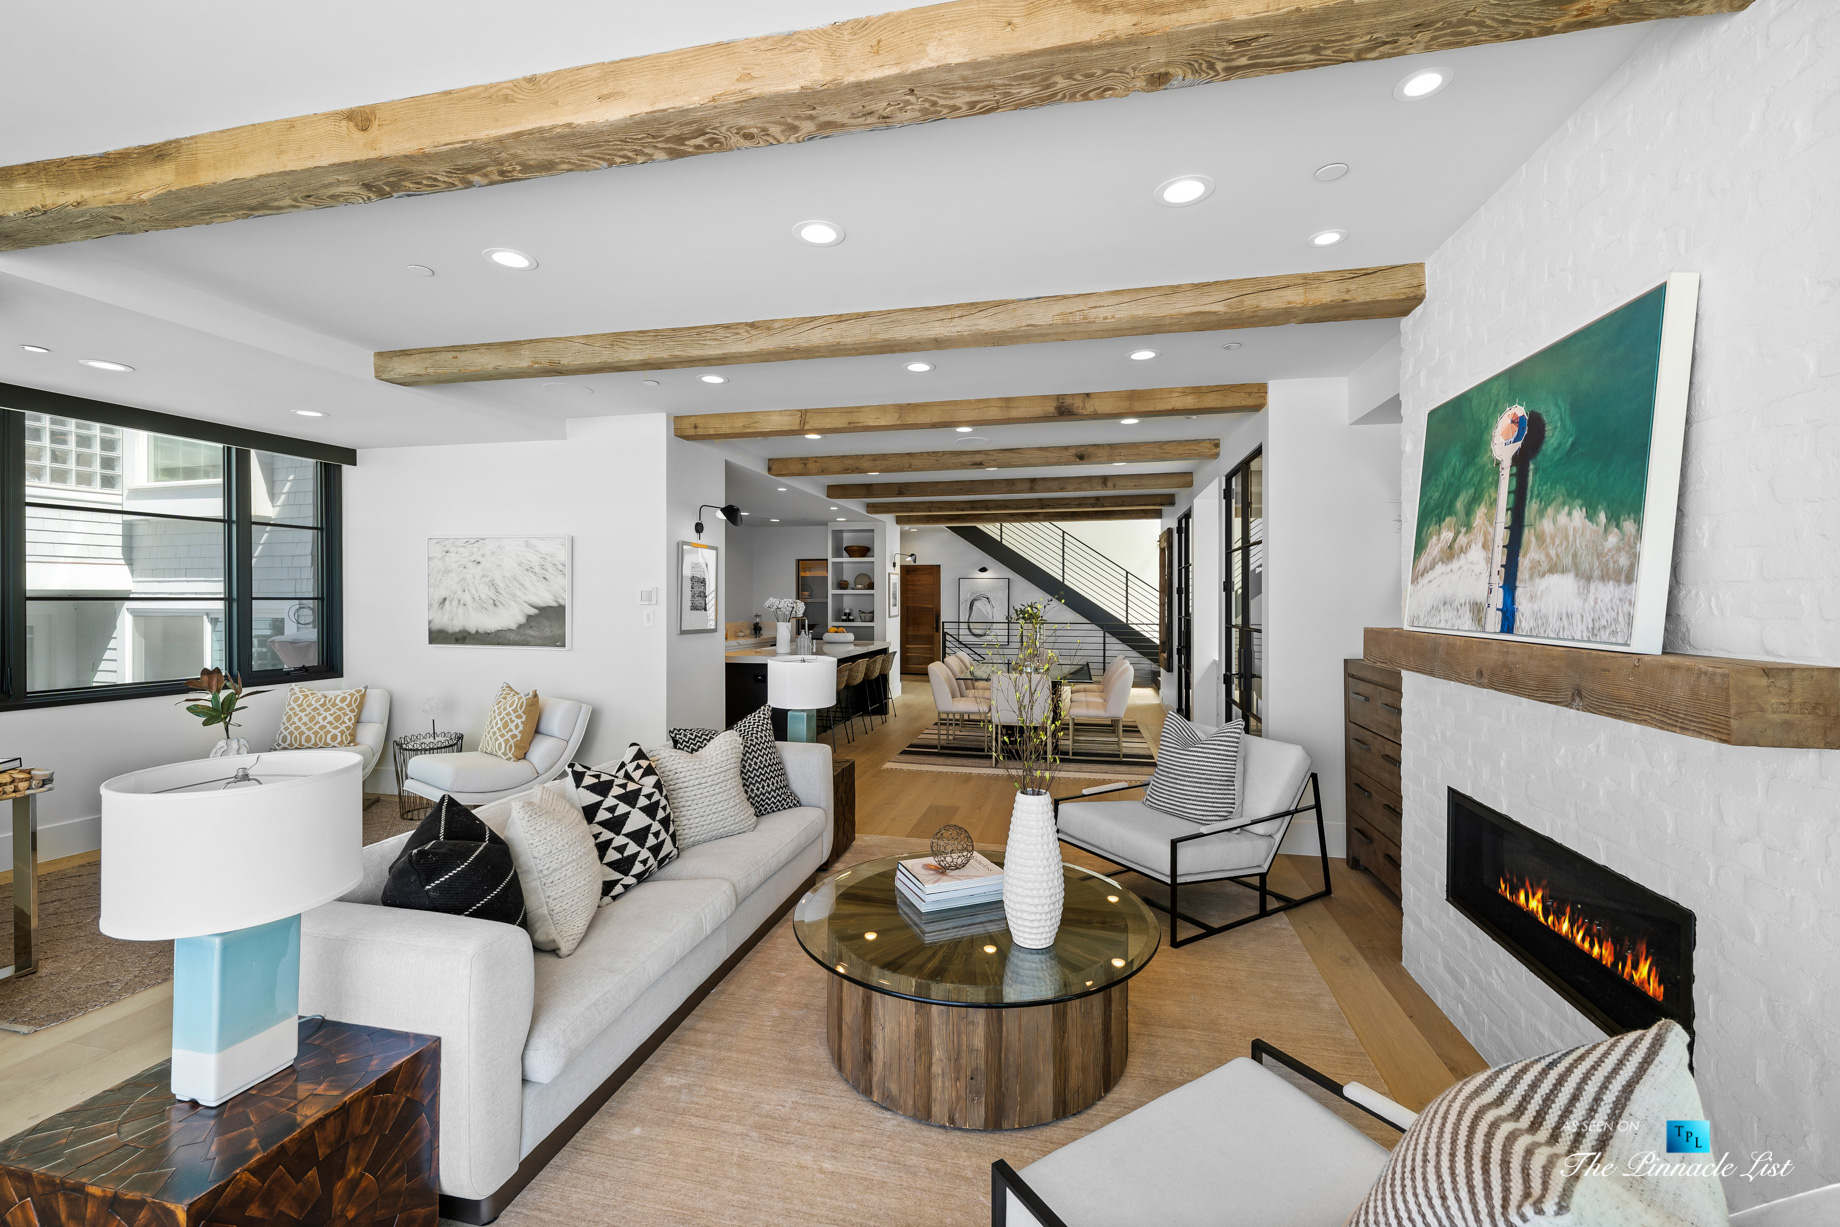 508 The Strand, Manhattan Beach, CA, USA - Living Room and Kitchen - Luxury Real Estate - Oceanfront Home